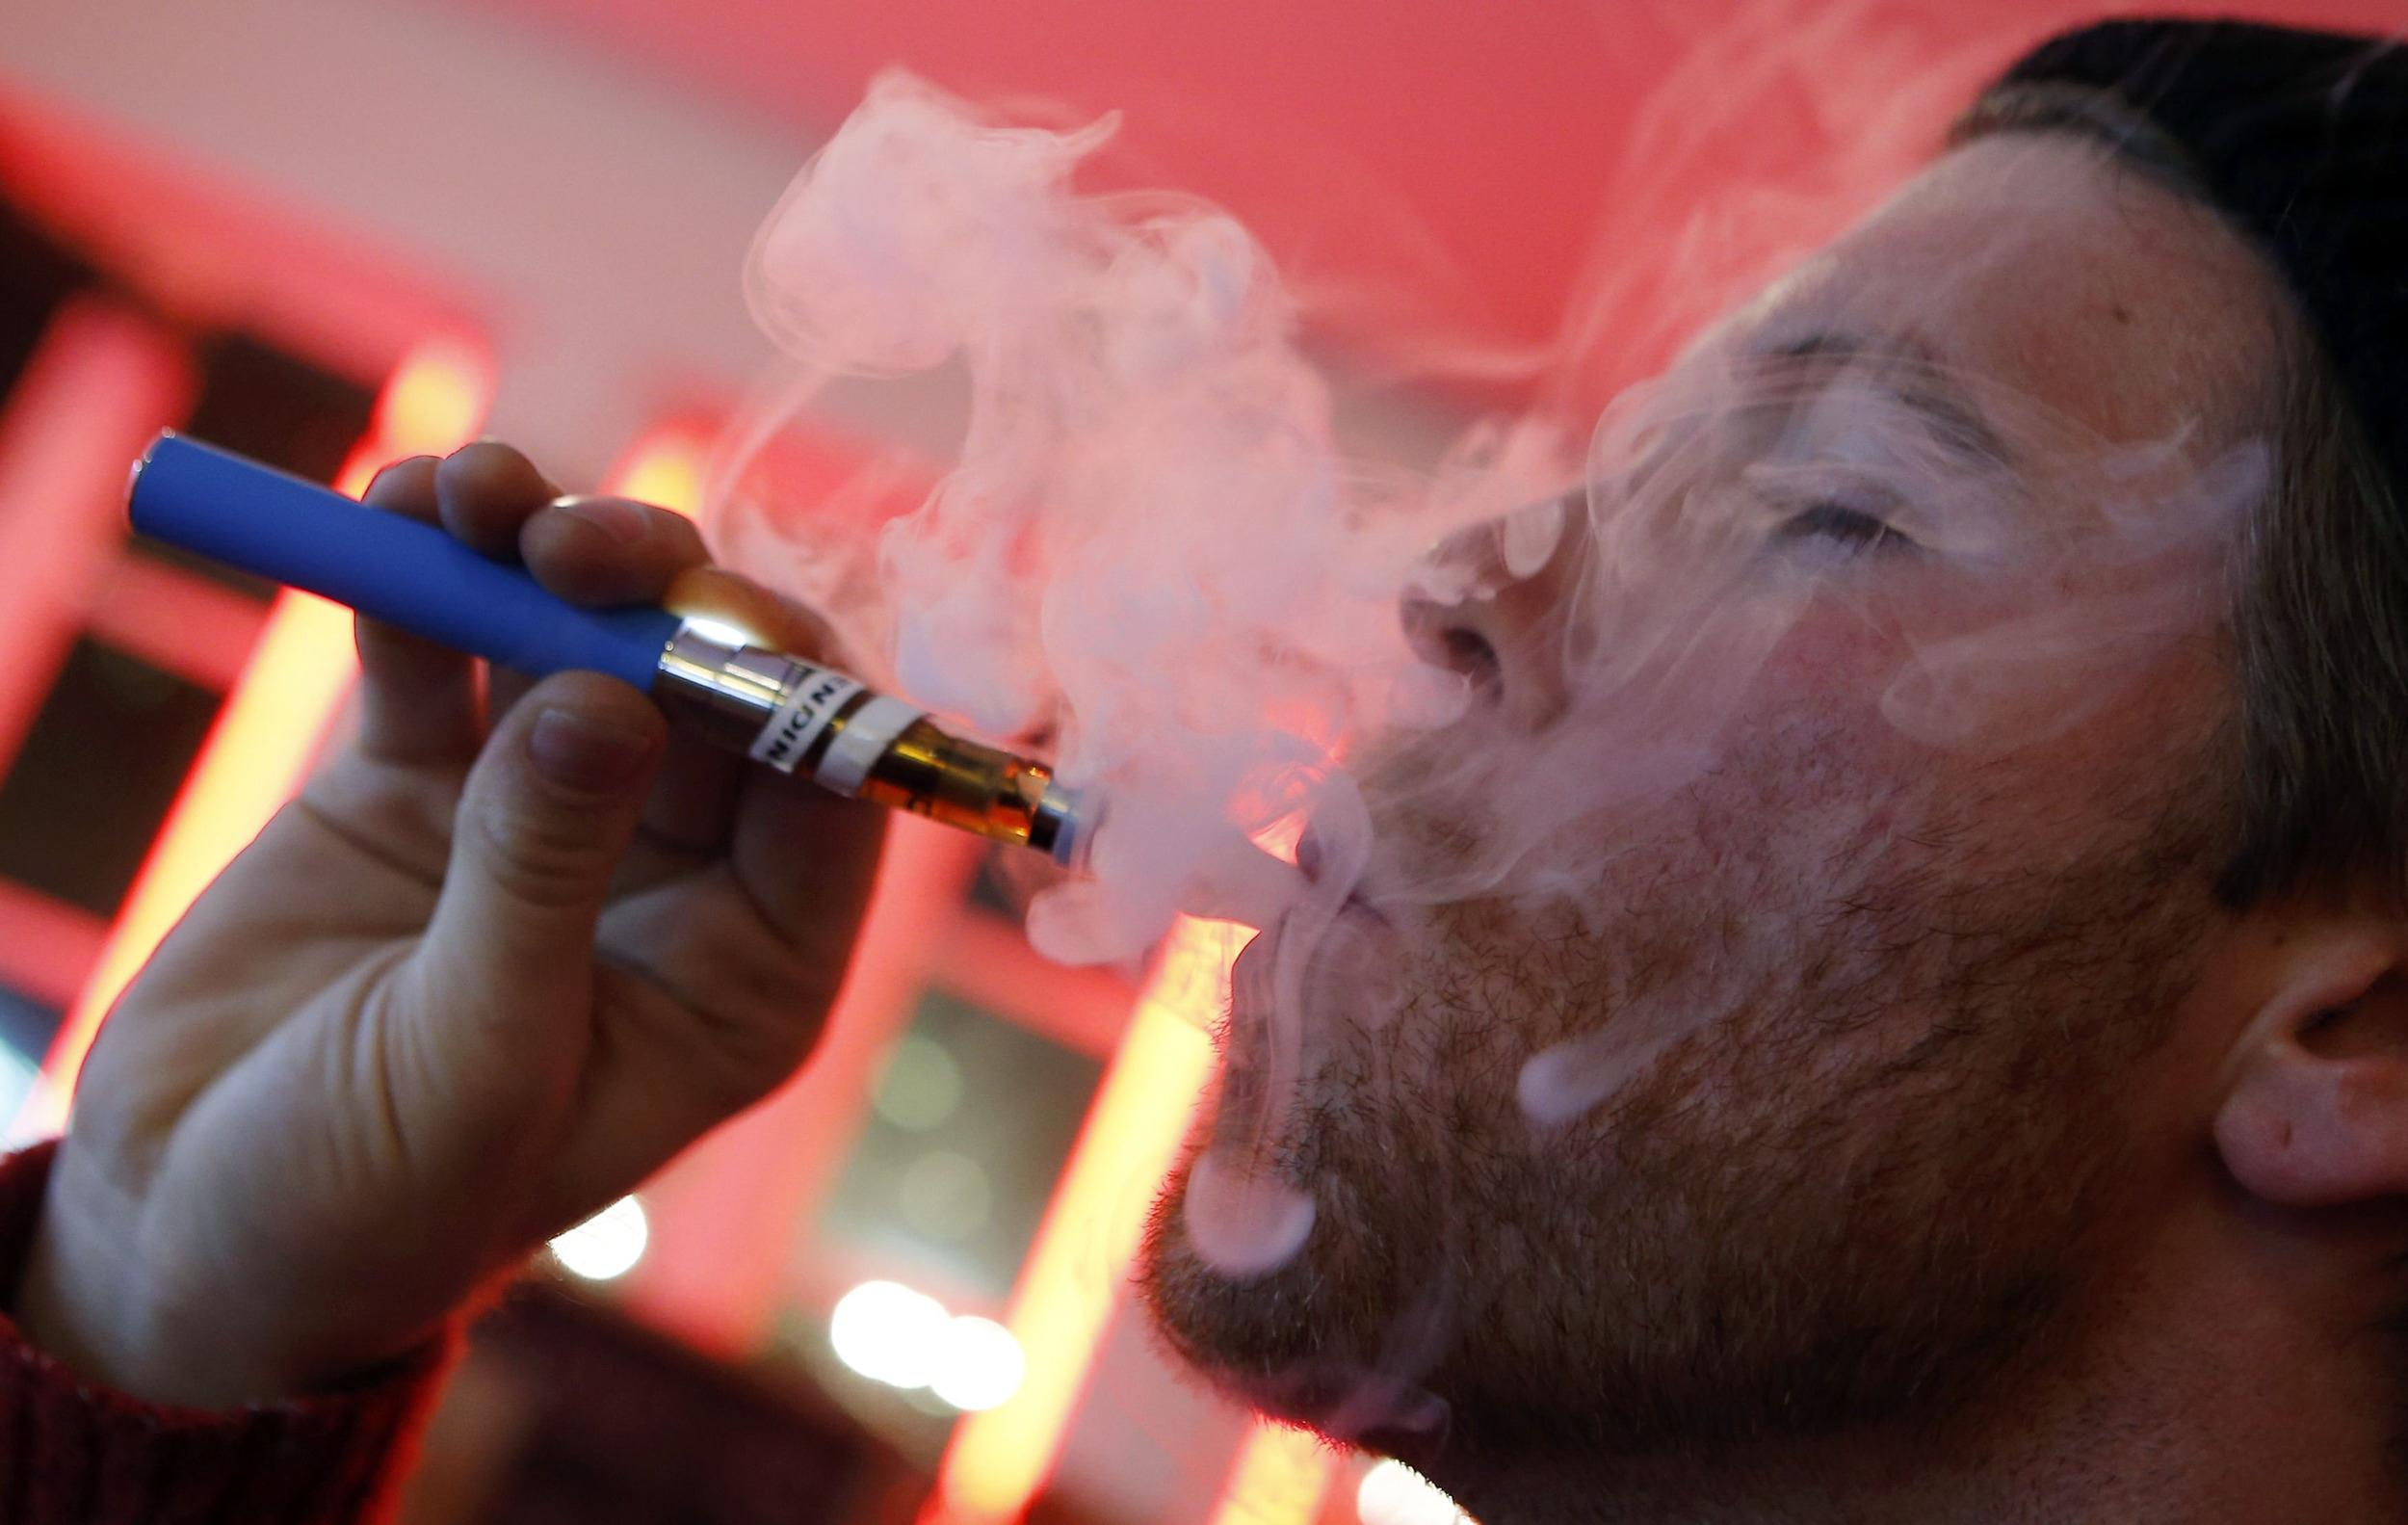 The e-cig industry blew a big vapor ring of relief about the FDA's proposed regulations for the booming $2 billion industry: not as bad as feared.